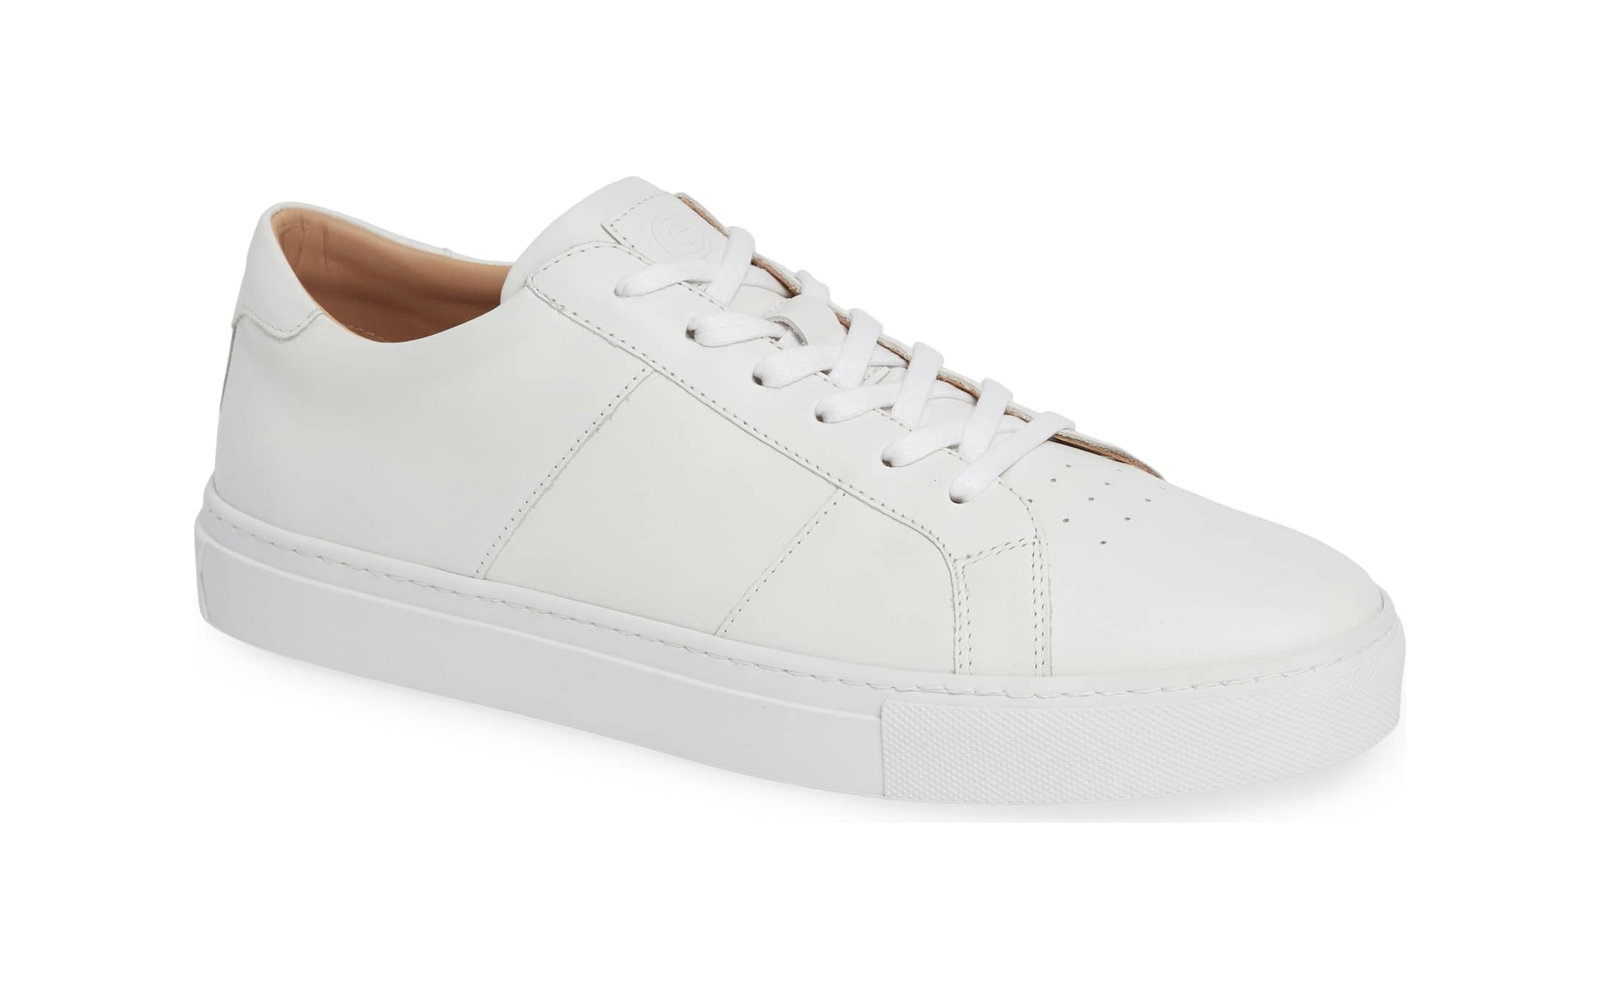 The Greats Royale Men's Leather Sneaker